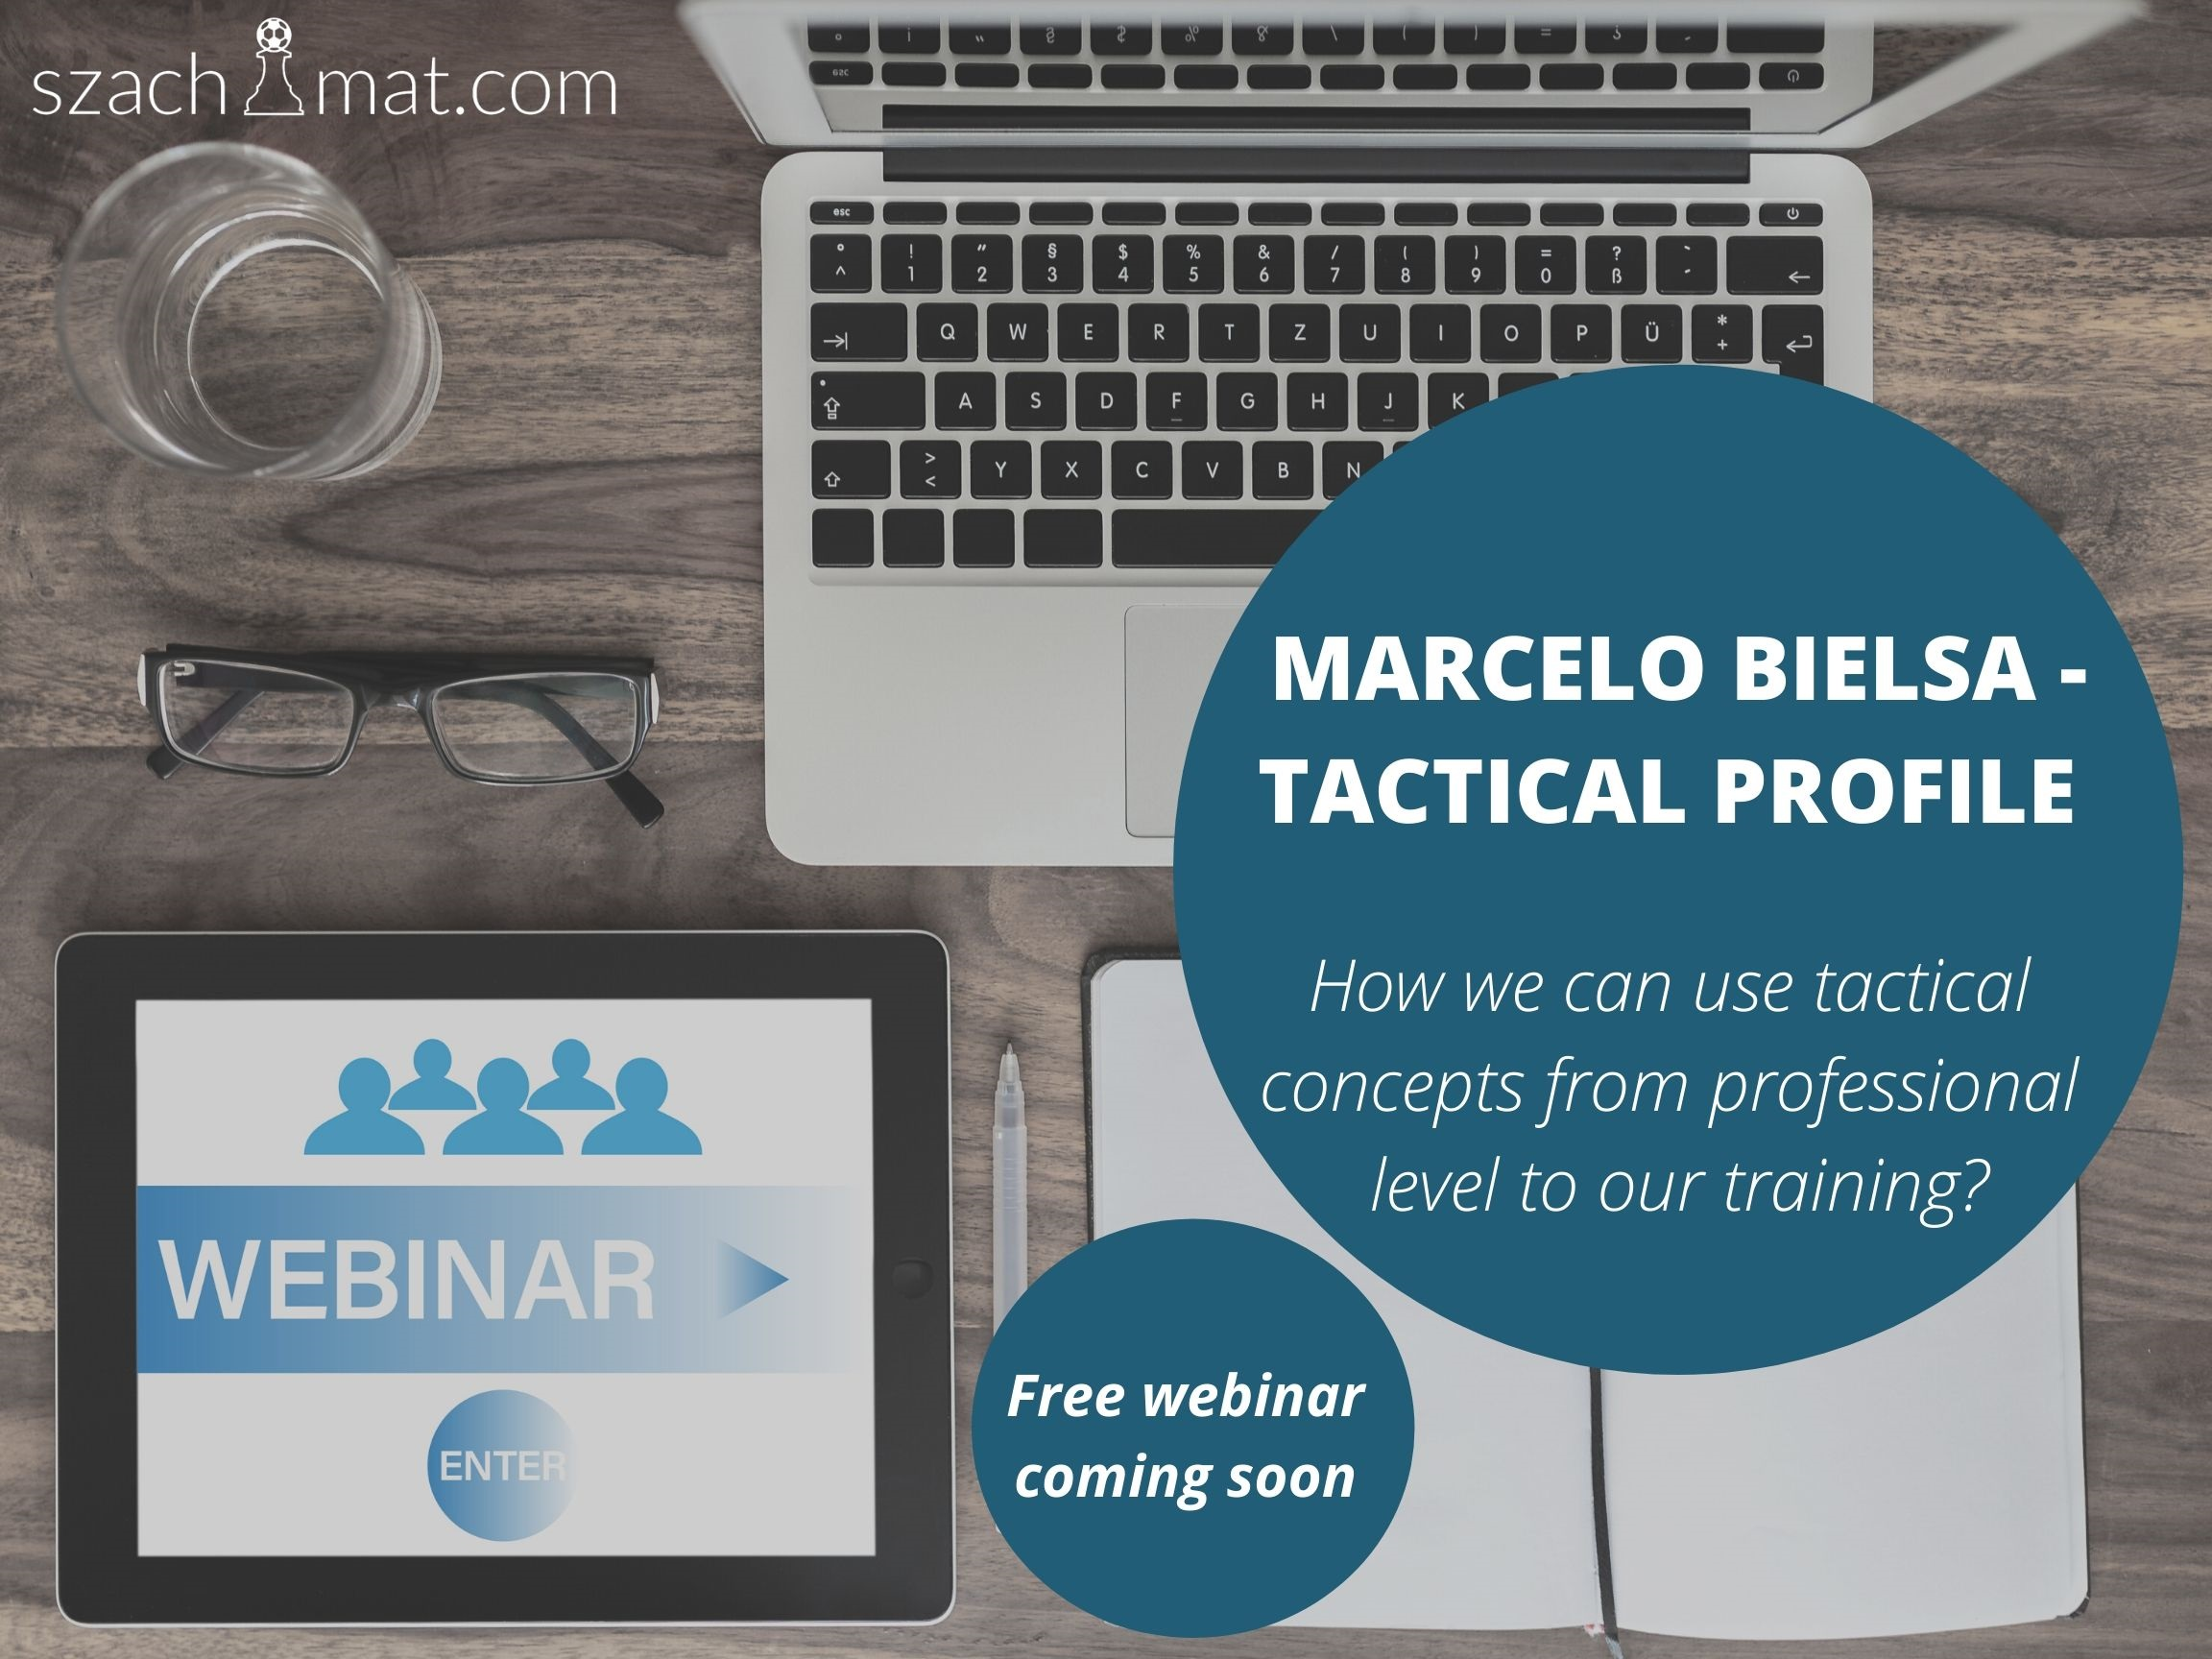 FREE WEBINAR: Tactical Analysis of Marcelo Bielsa and practical aplication.